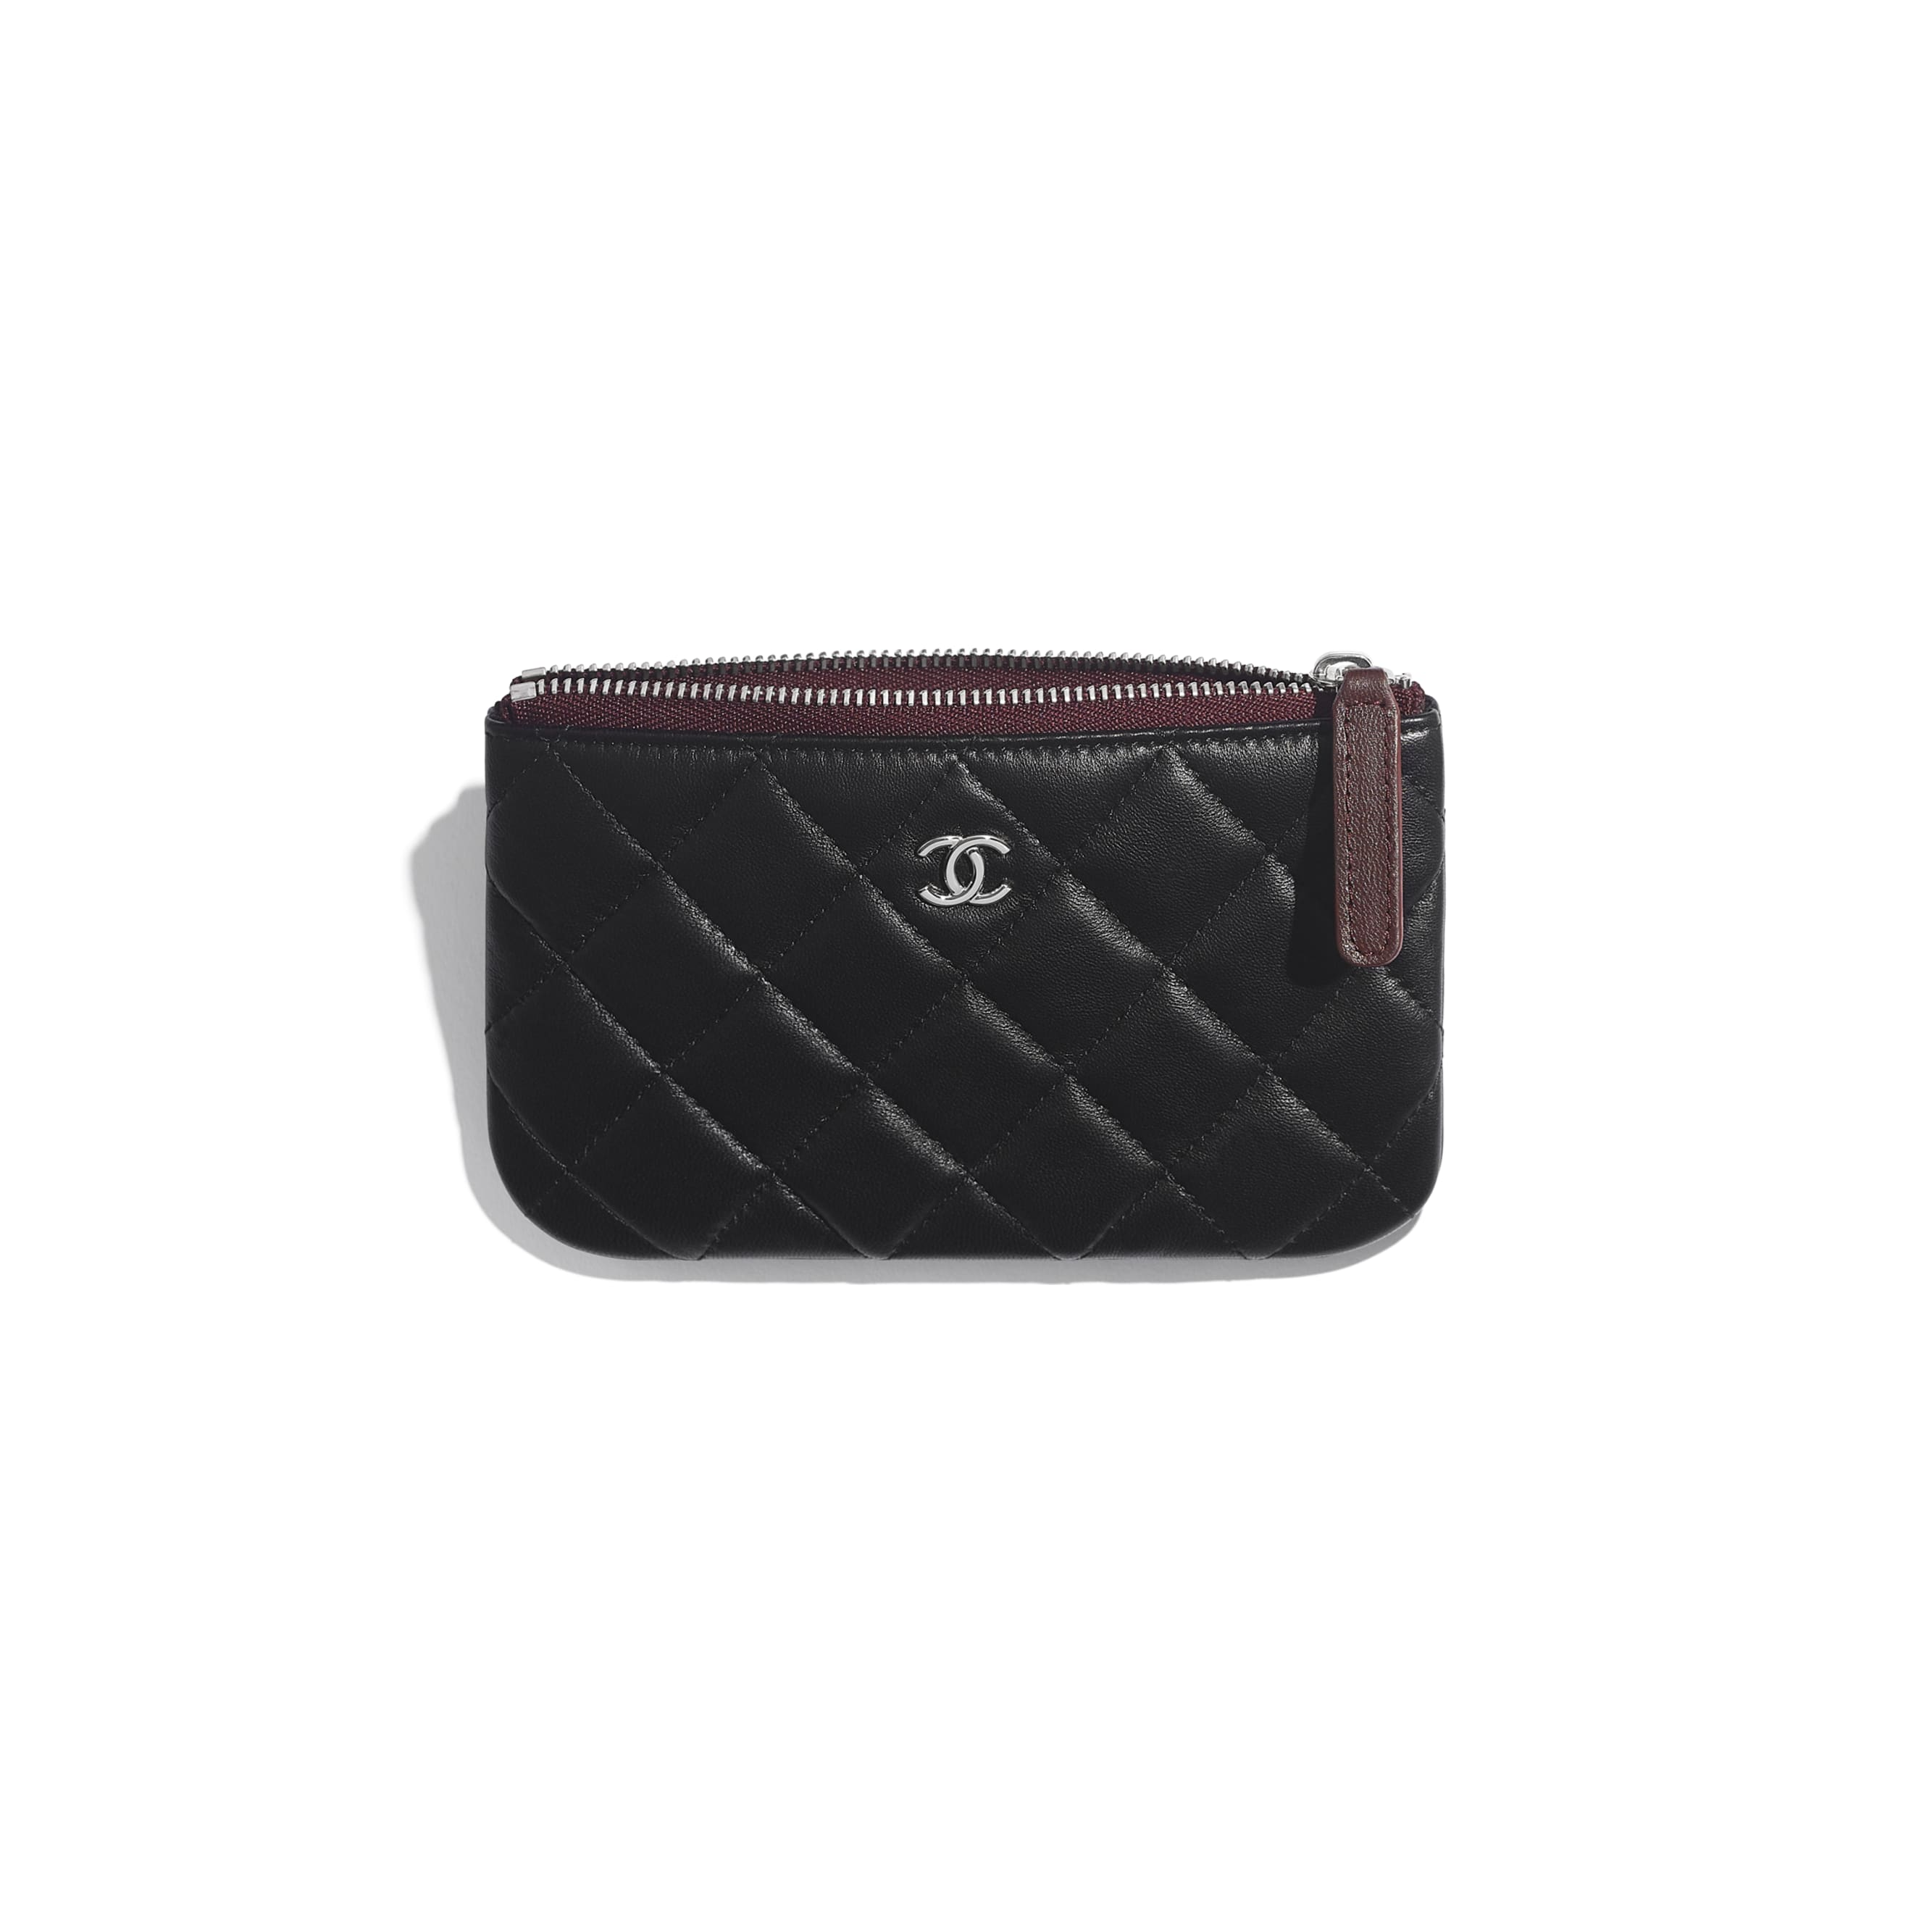 Classic Mini Pouch - Black - Lambskin & Silver-Tone Metal - CHANEL - Other view - see standard sized version